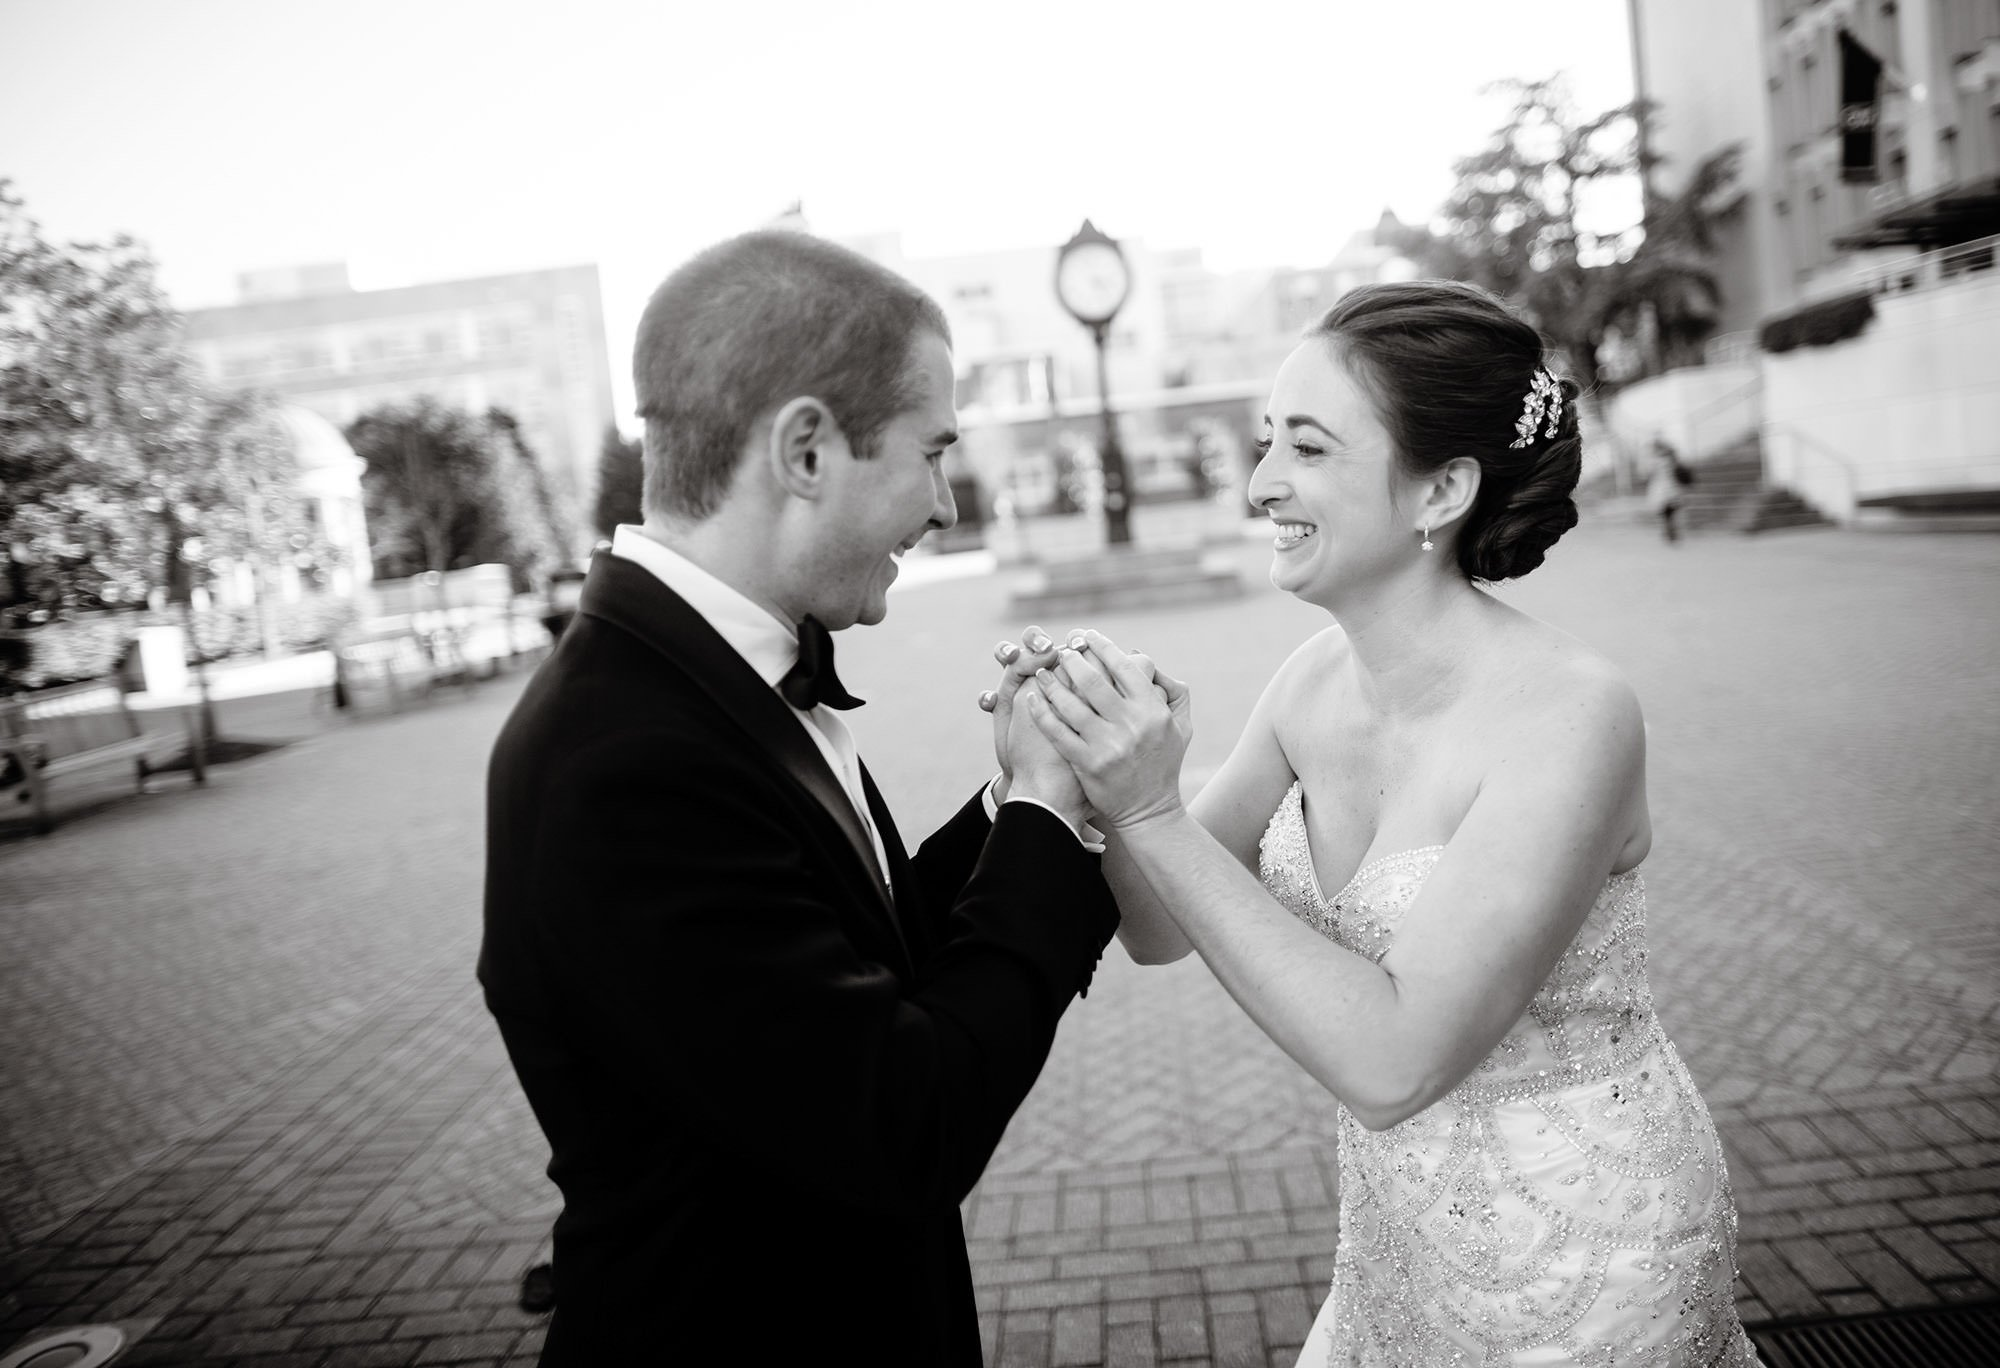 The Bride and Groom share their first look at Kogan Plaza prior to their NMWA wedding.